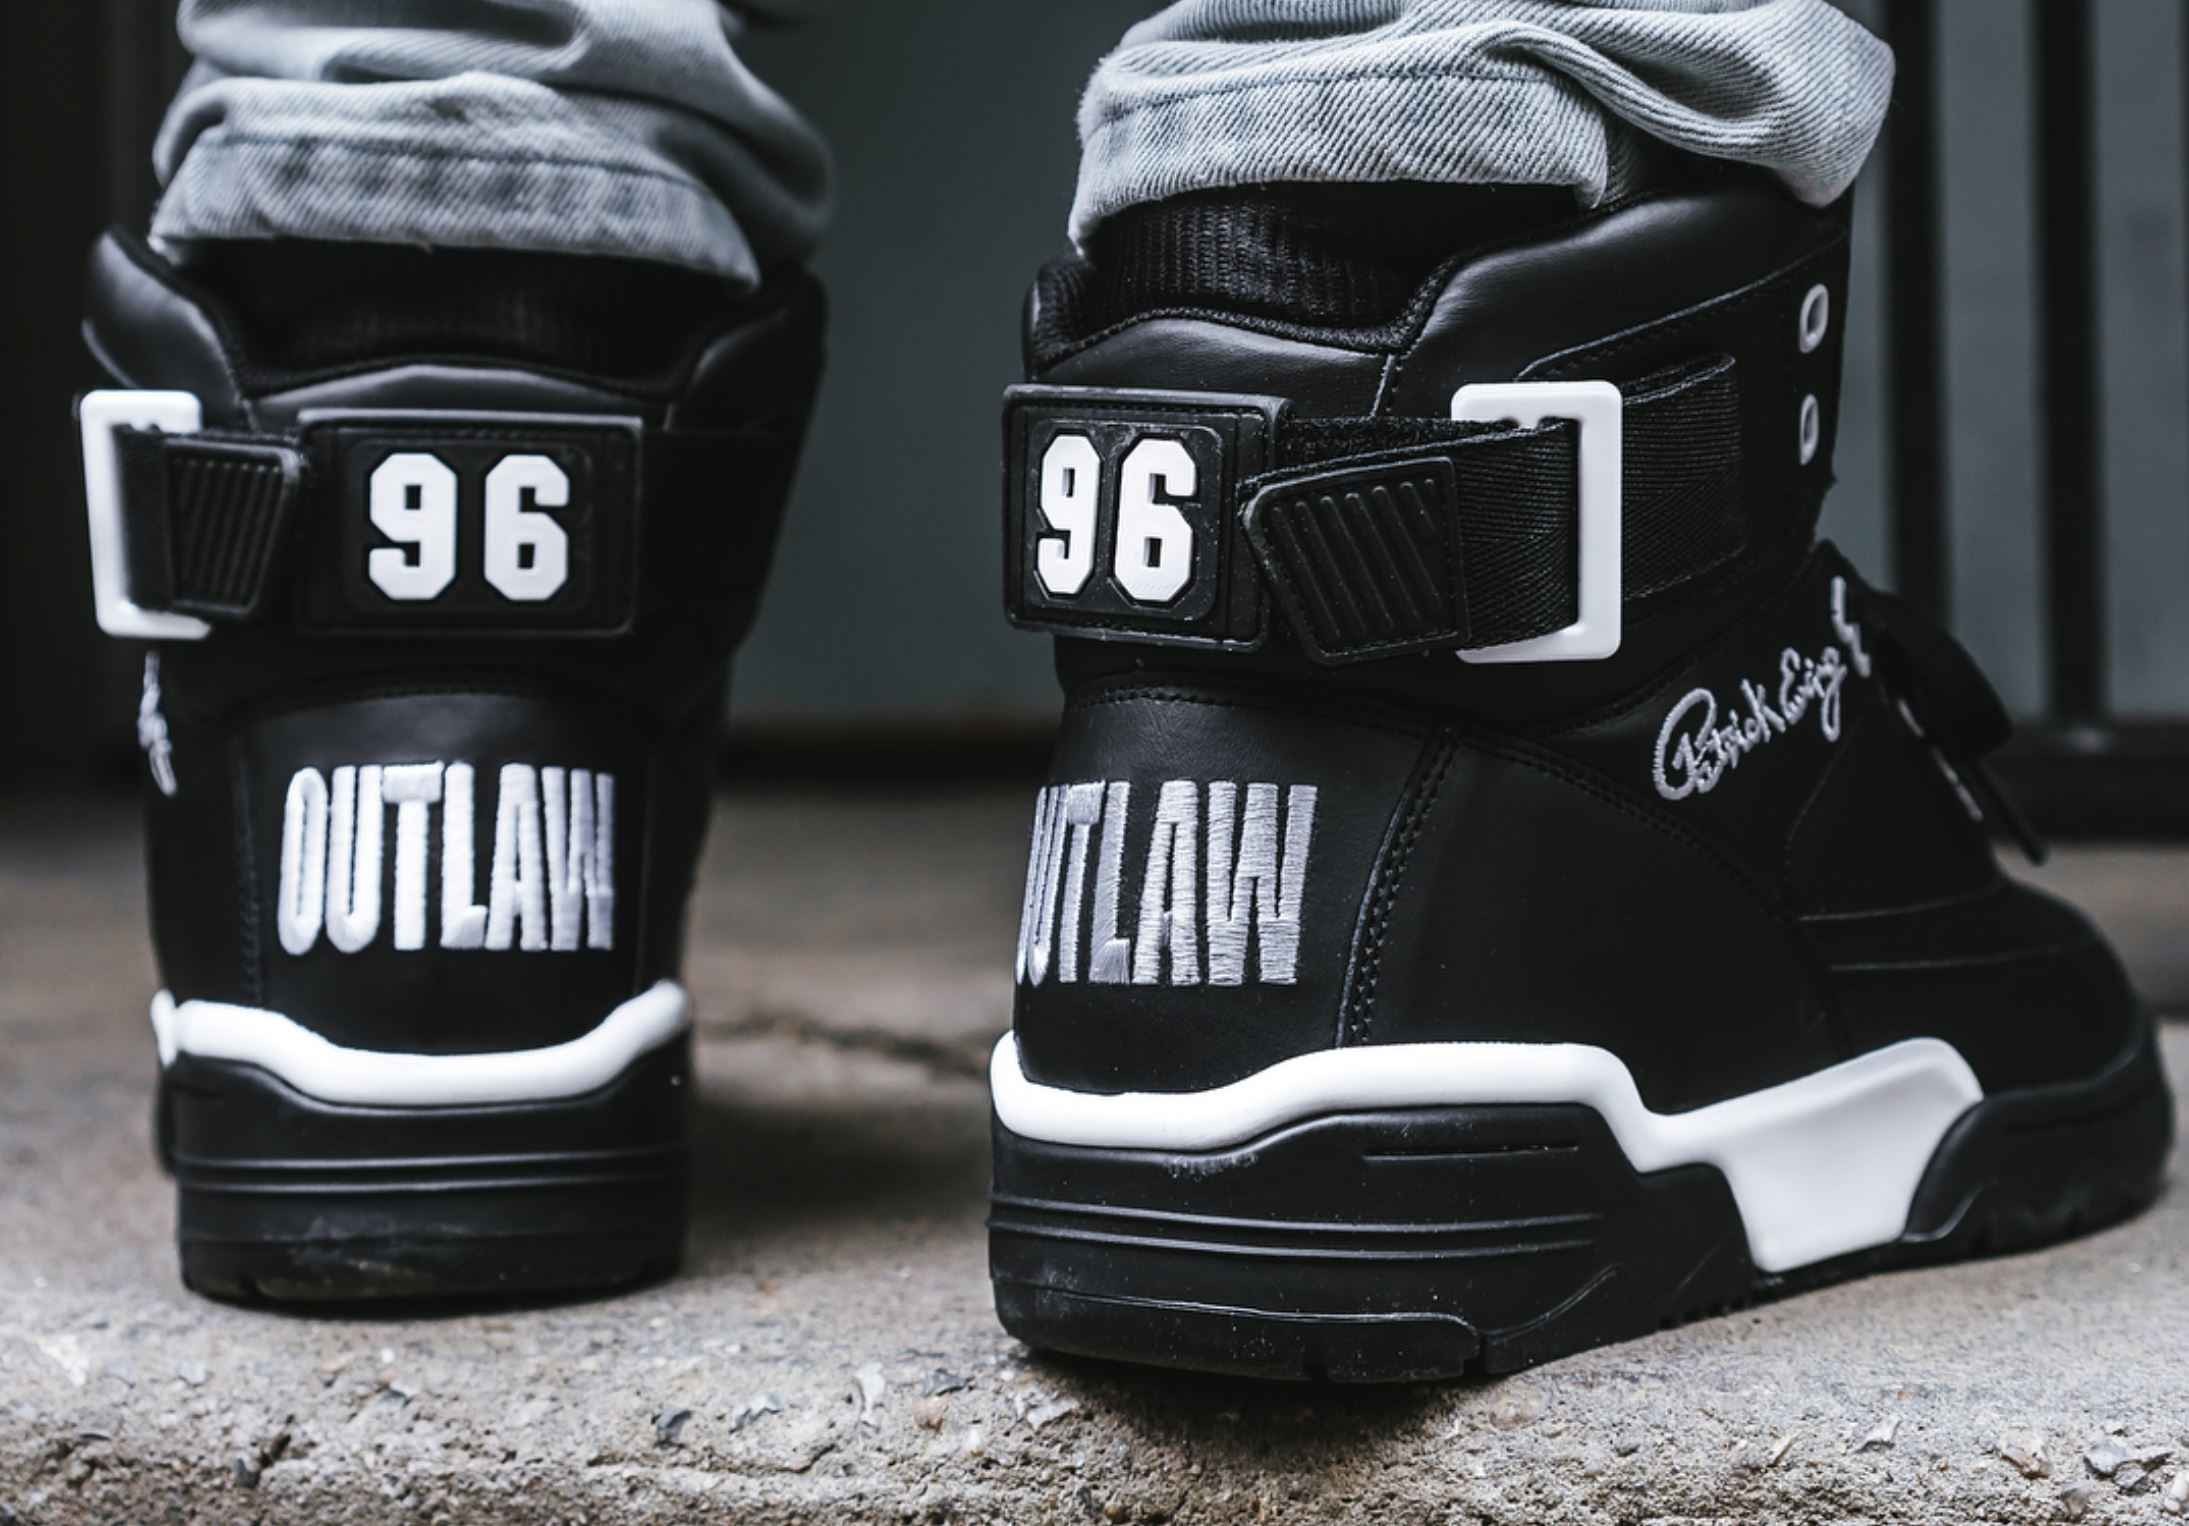 the outlawz ewing 33 hi 1996